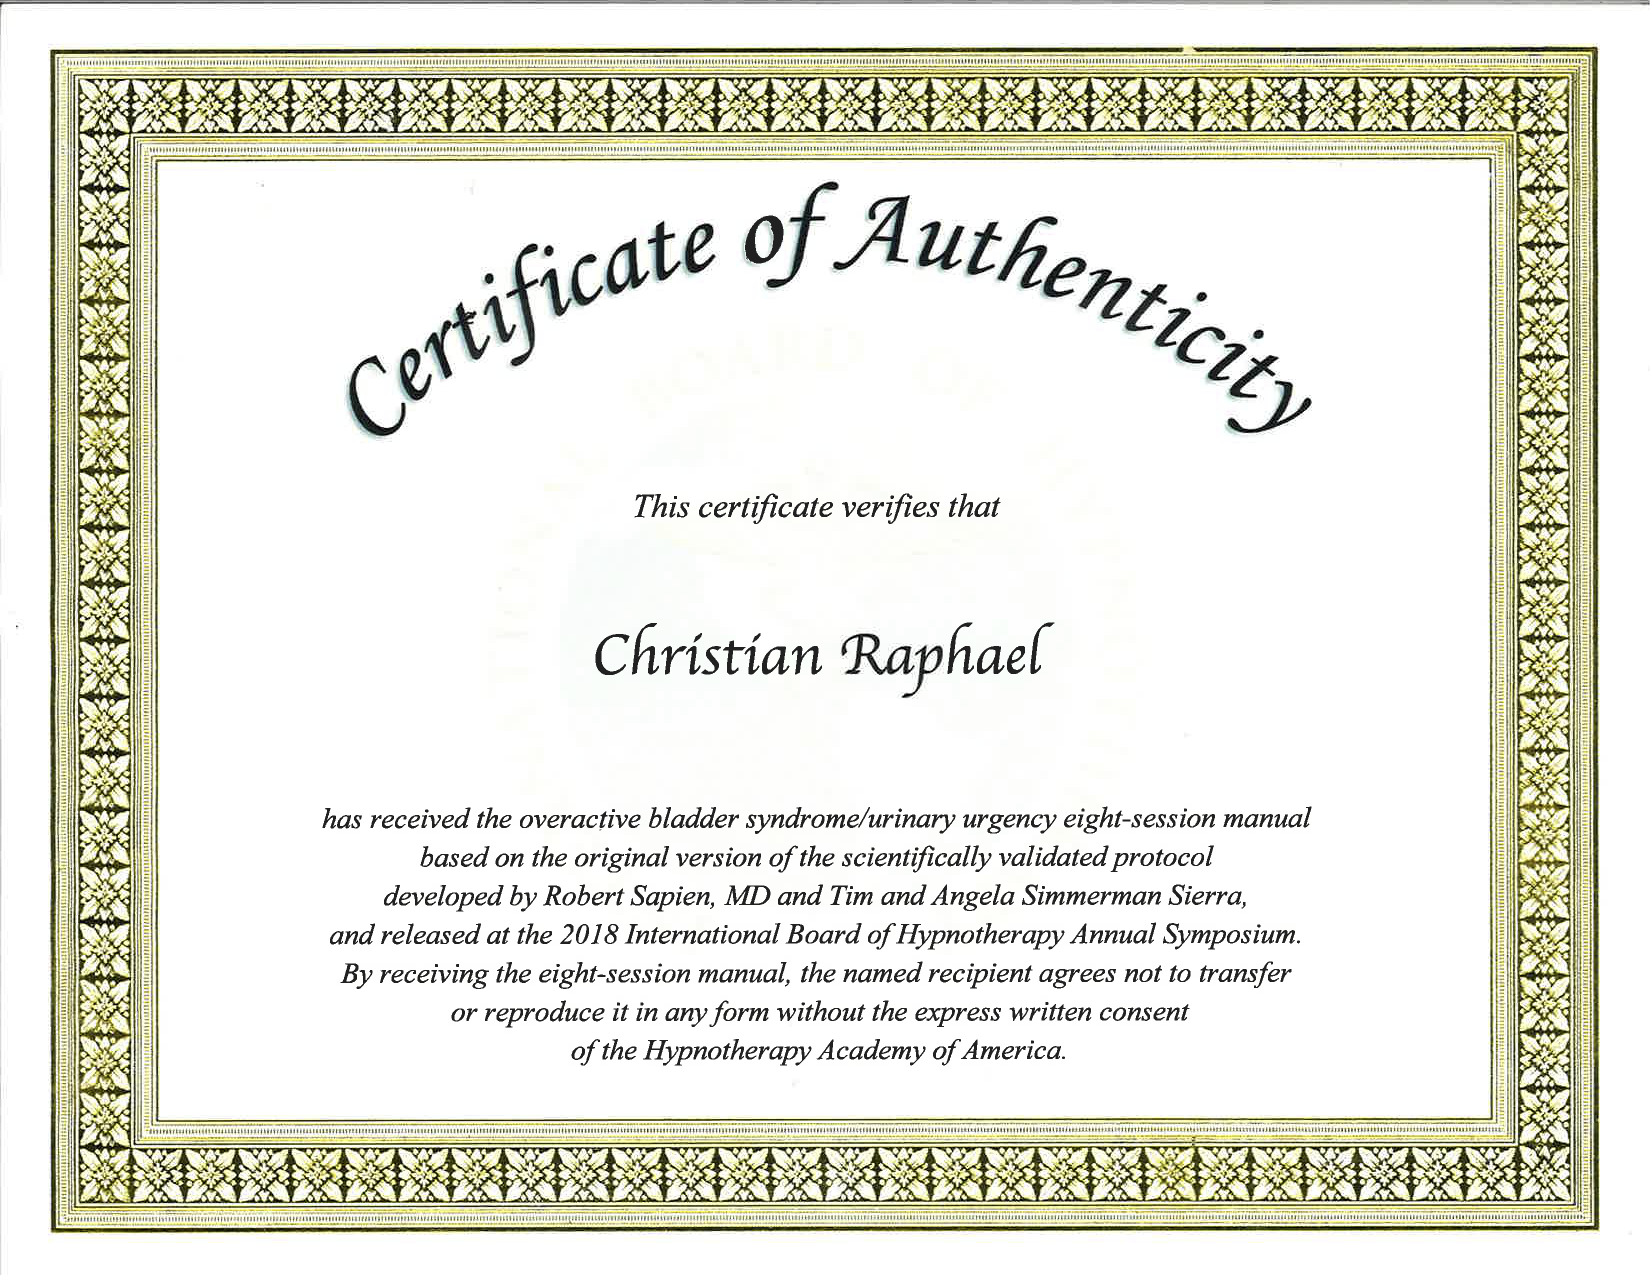 Oab And Urinary Urgency Hypnotherapy Certification Christian